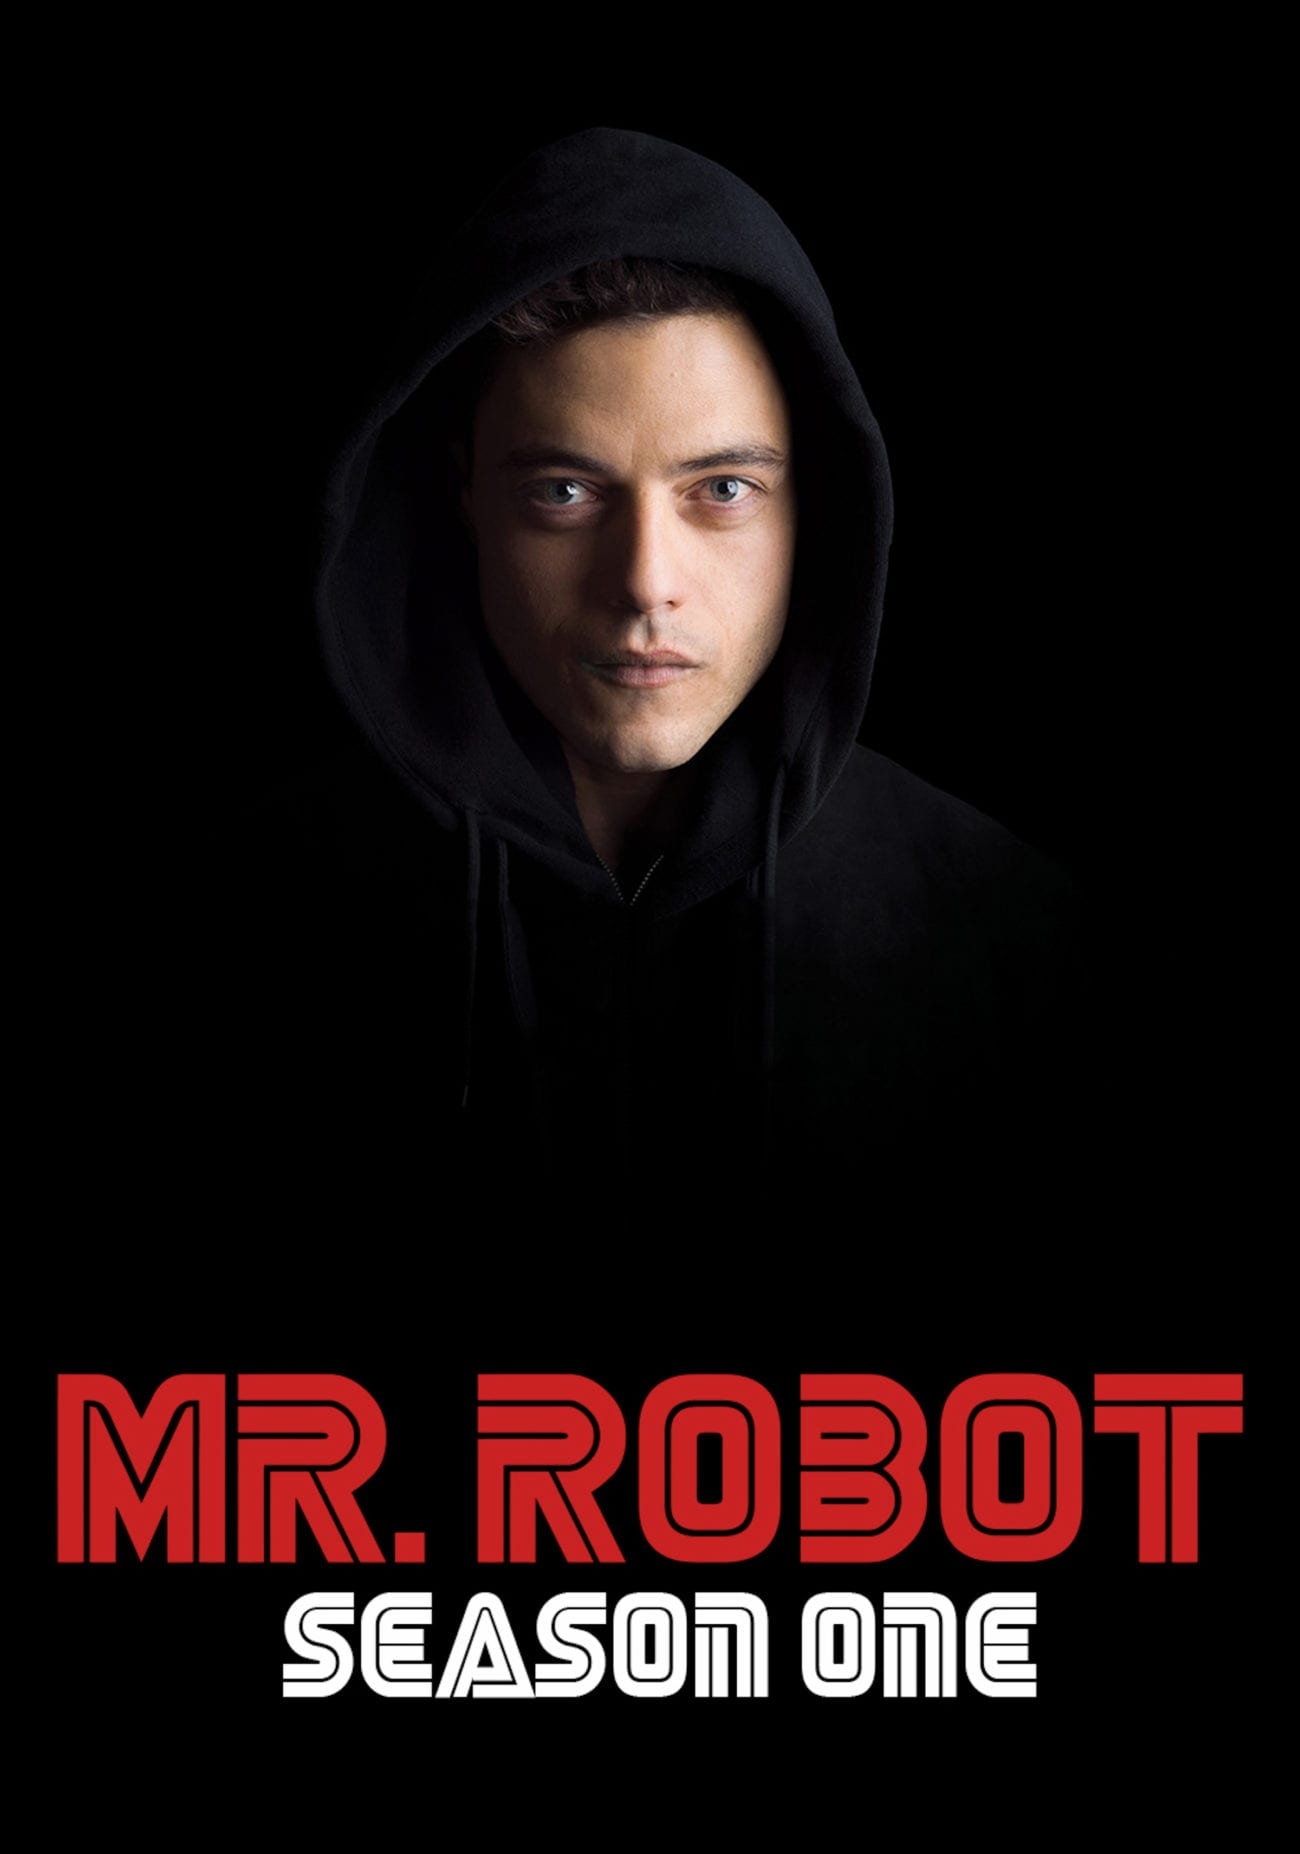 From classic rock to modern hip-hop, the 'Mr. Robot' soundtrack shines. Here's our quiz dedicated to these epic songs.